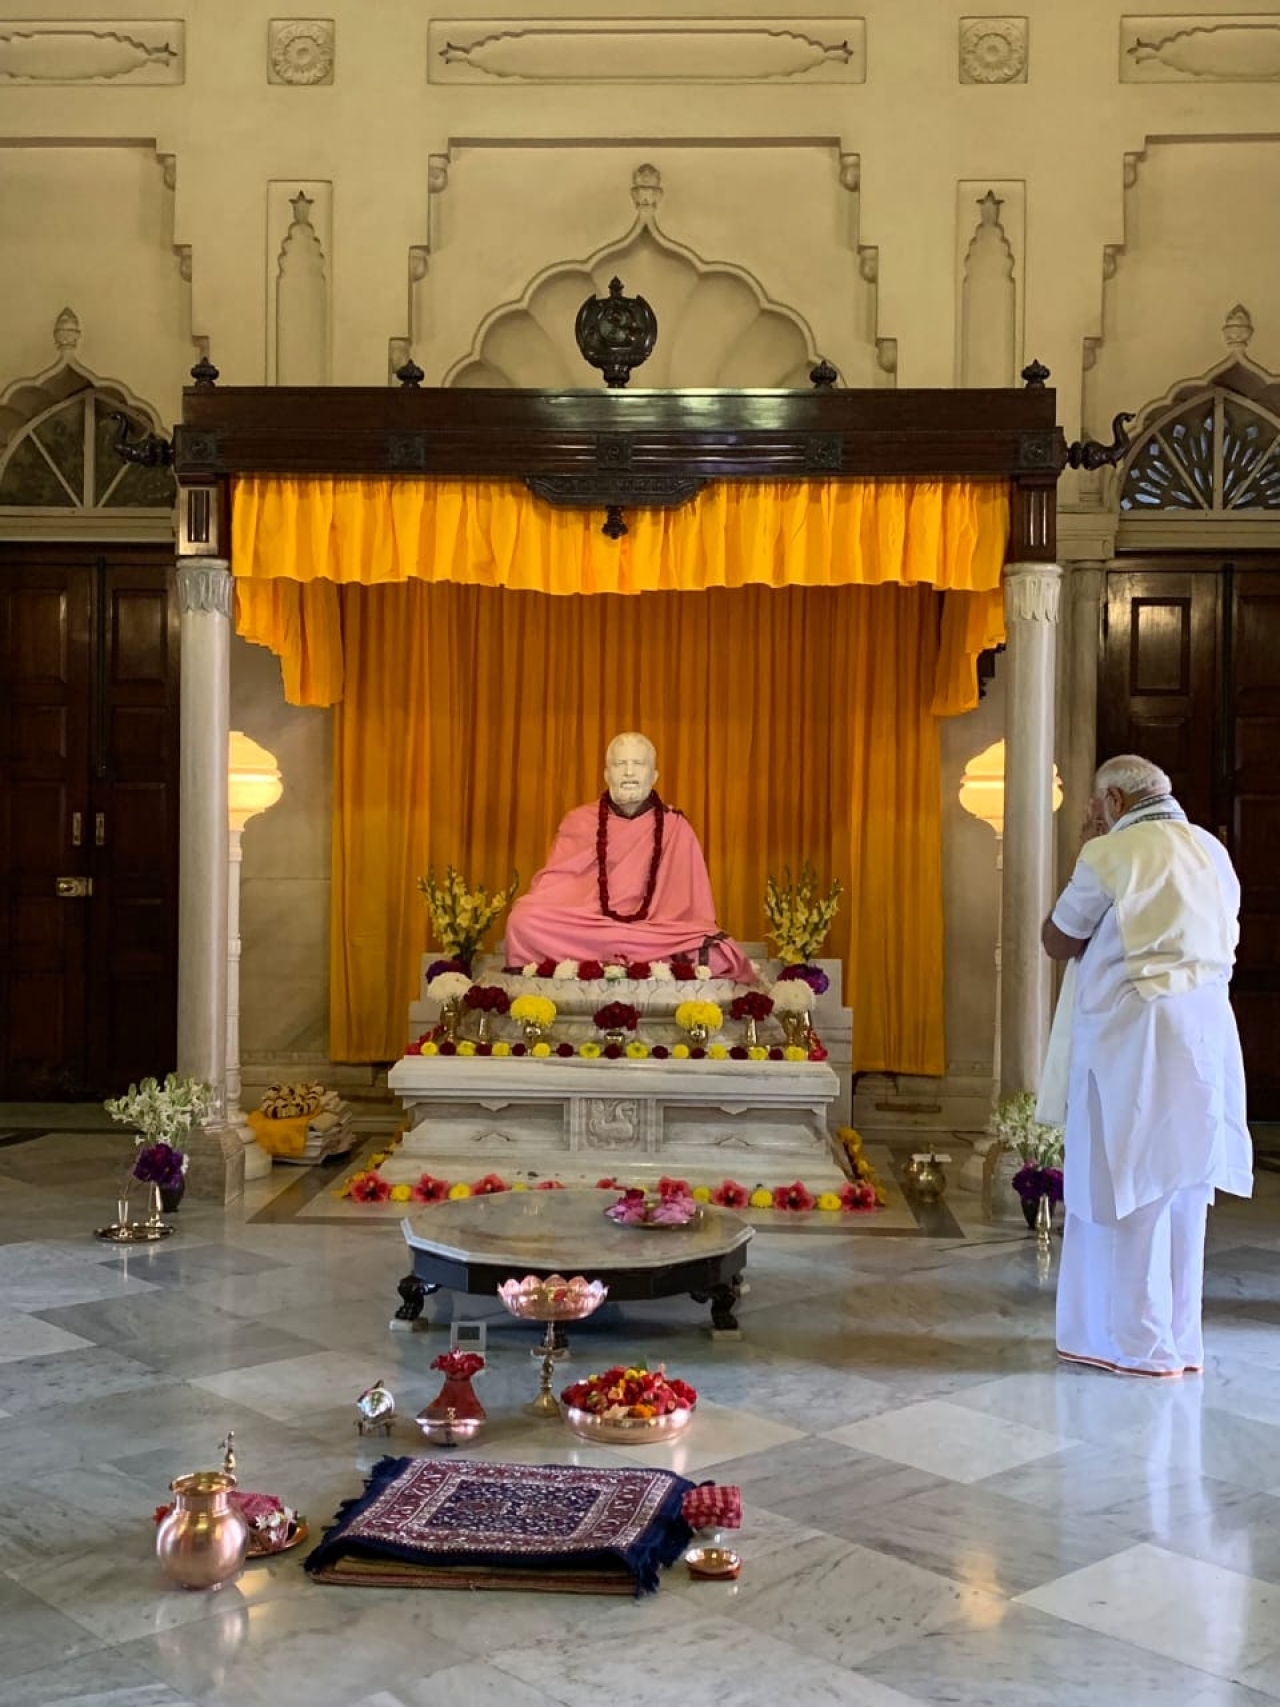 A silent prayer at the altar of Sri Ramakrishna.